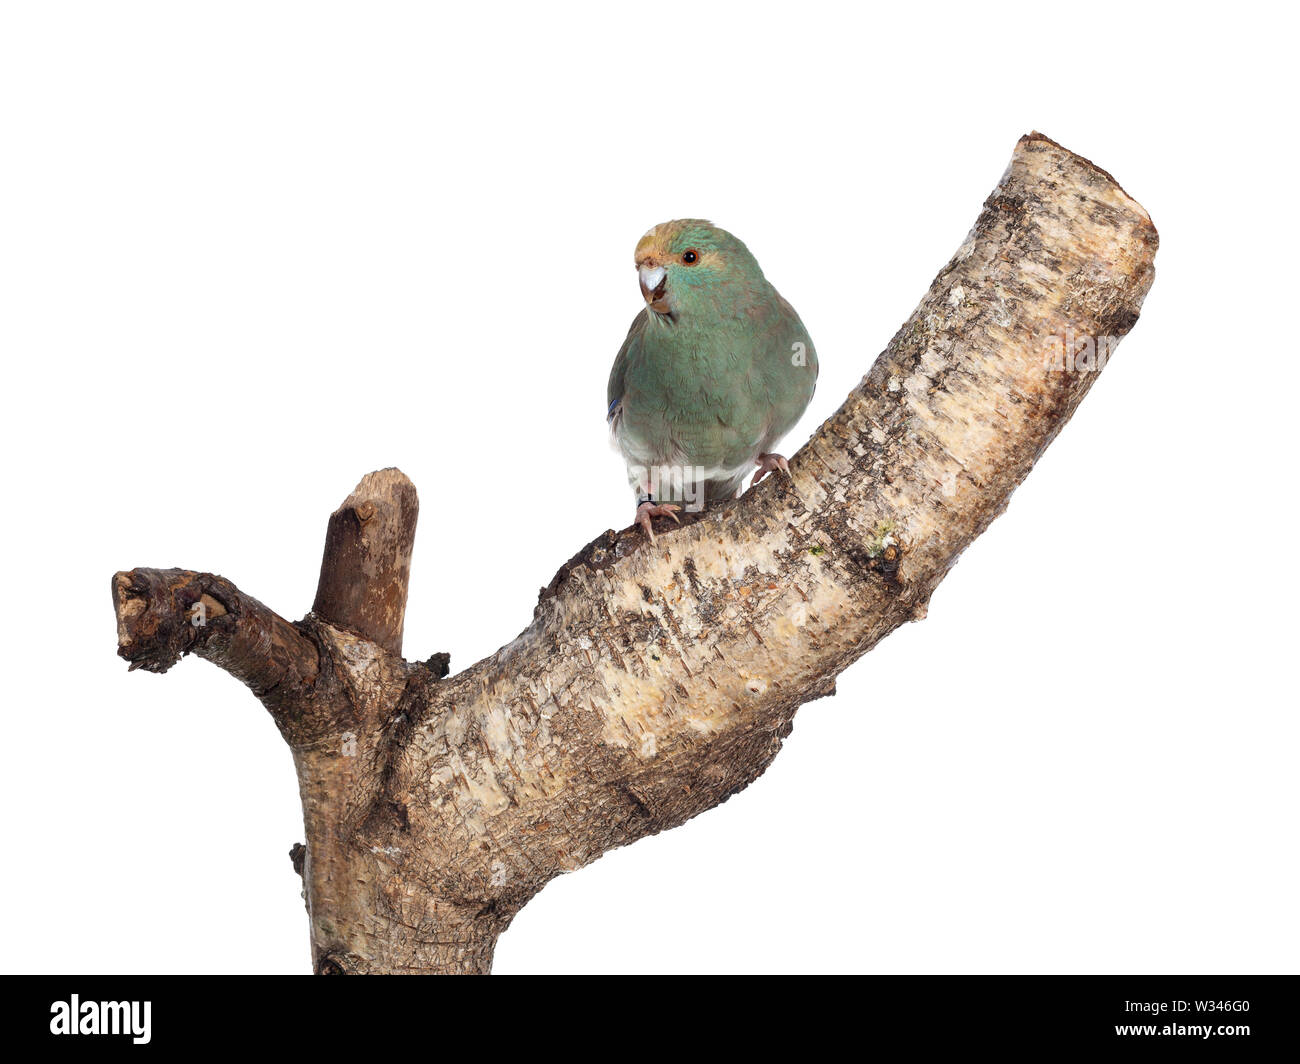 Curious turquoise Kakariki bird sitting on piece of wood, looking at camera with cute head tilt. Isolated on white background. - Stock Image